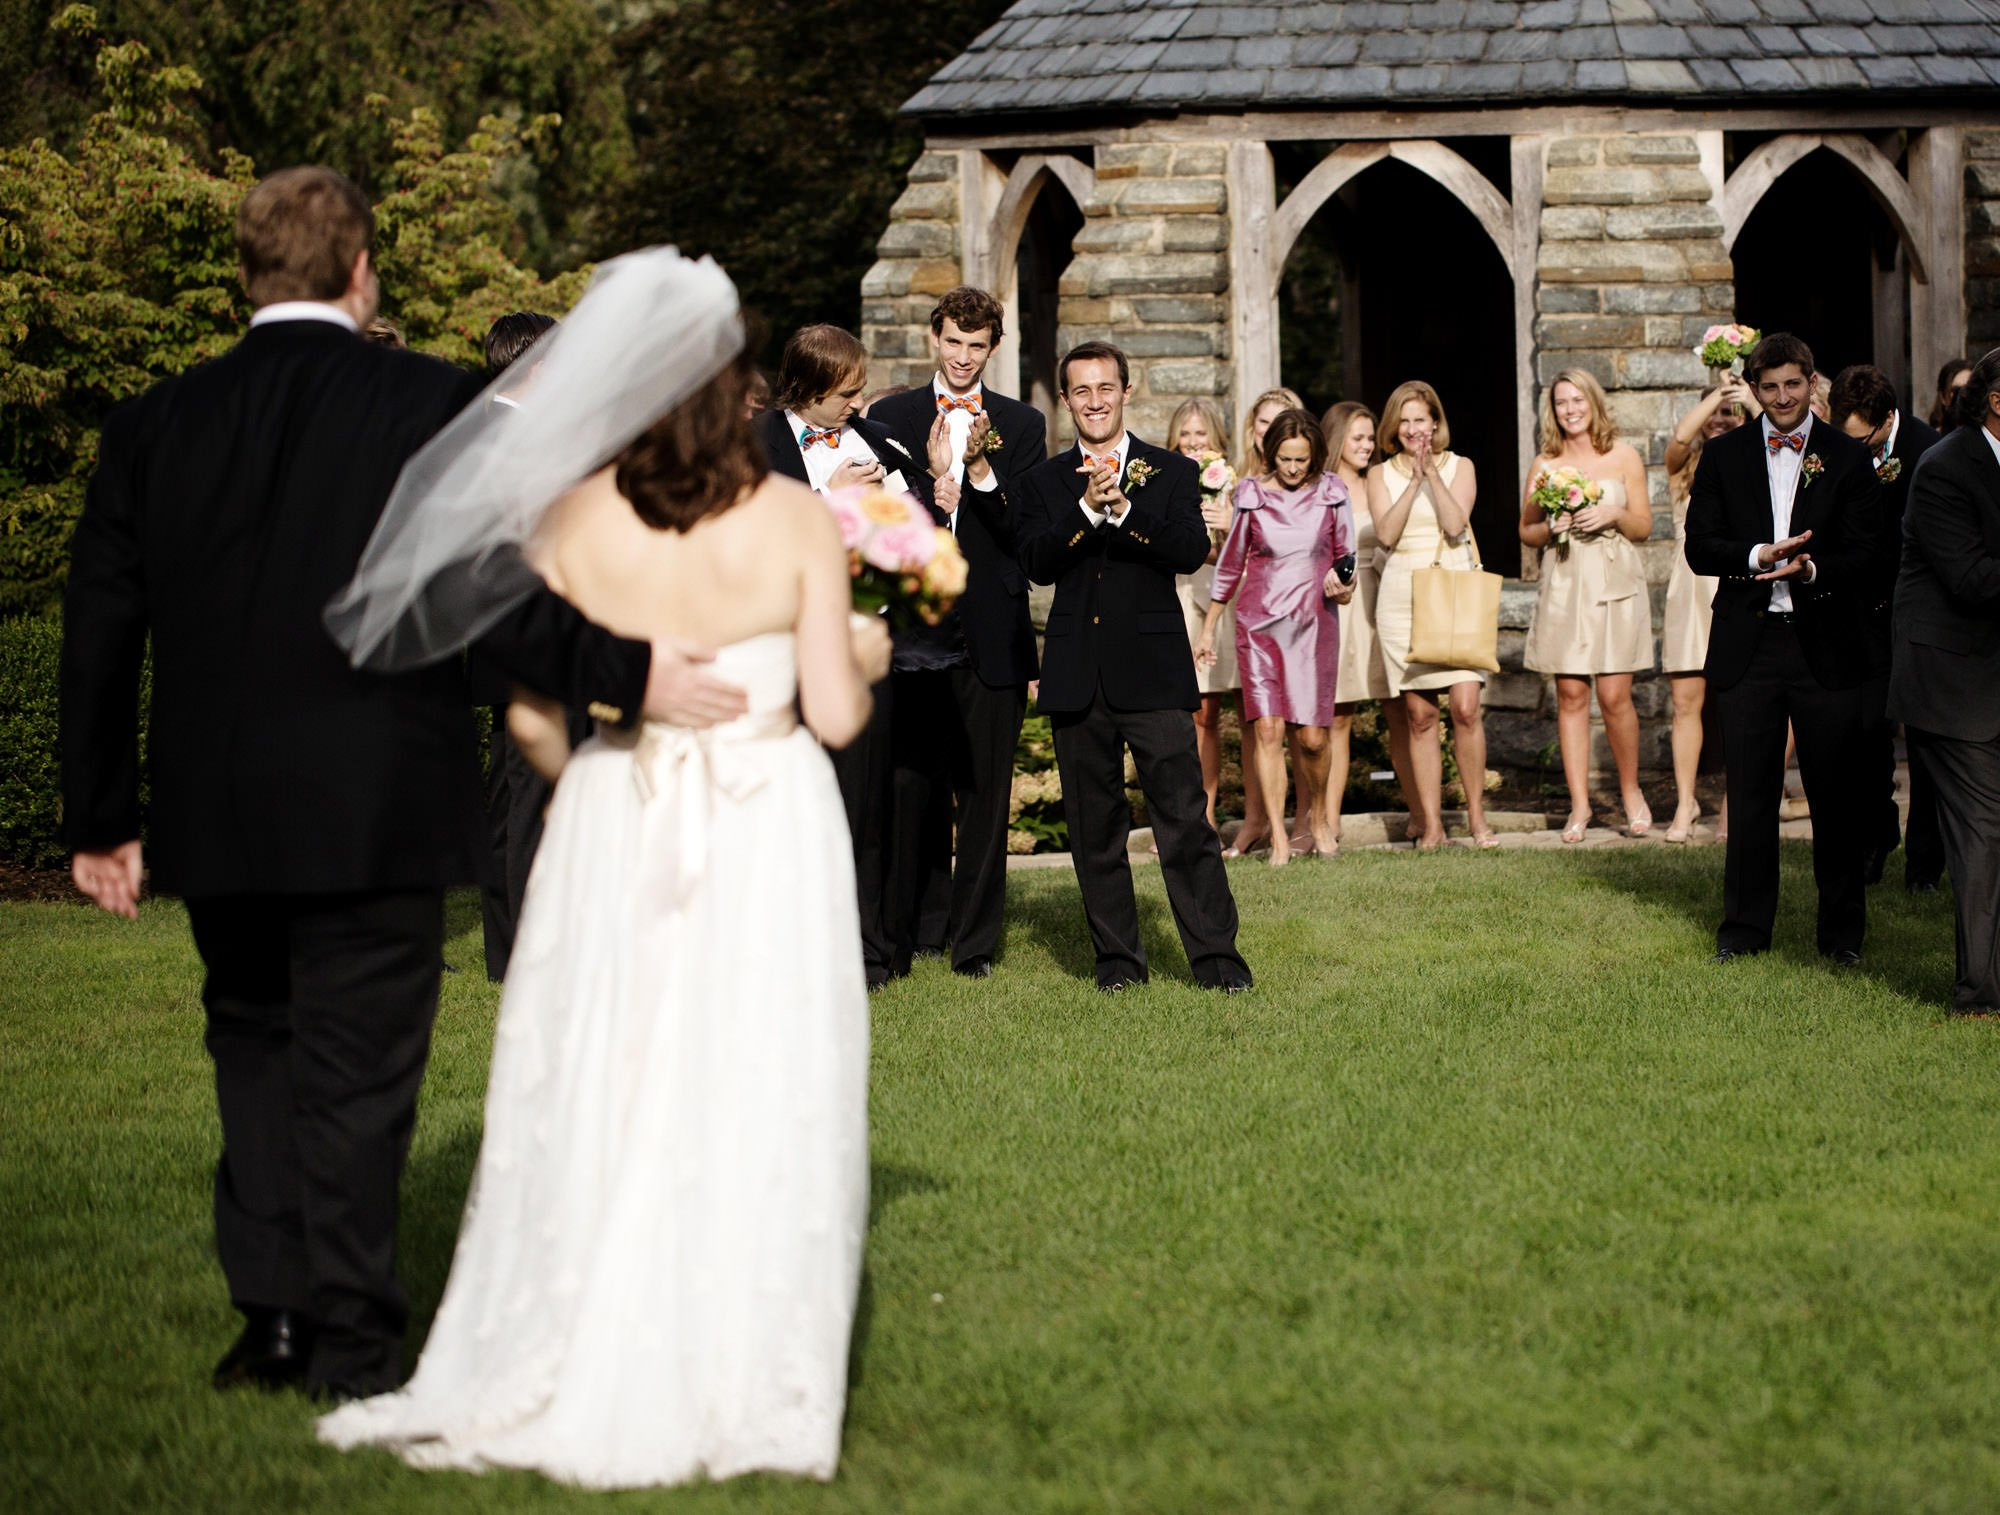 The bride and groom are greeted by the wedding party in the flower garden outside of the Washington National Cathedral.